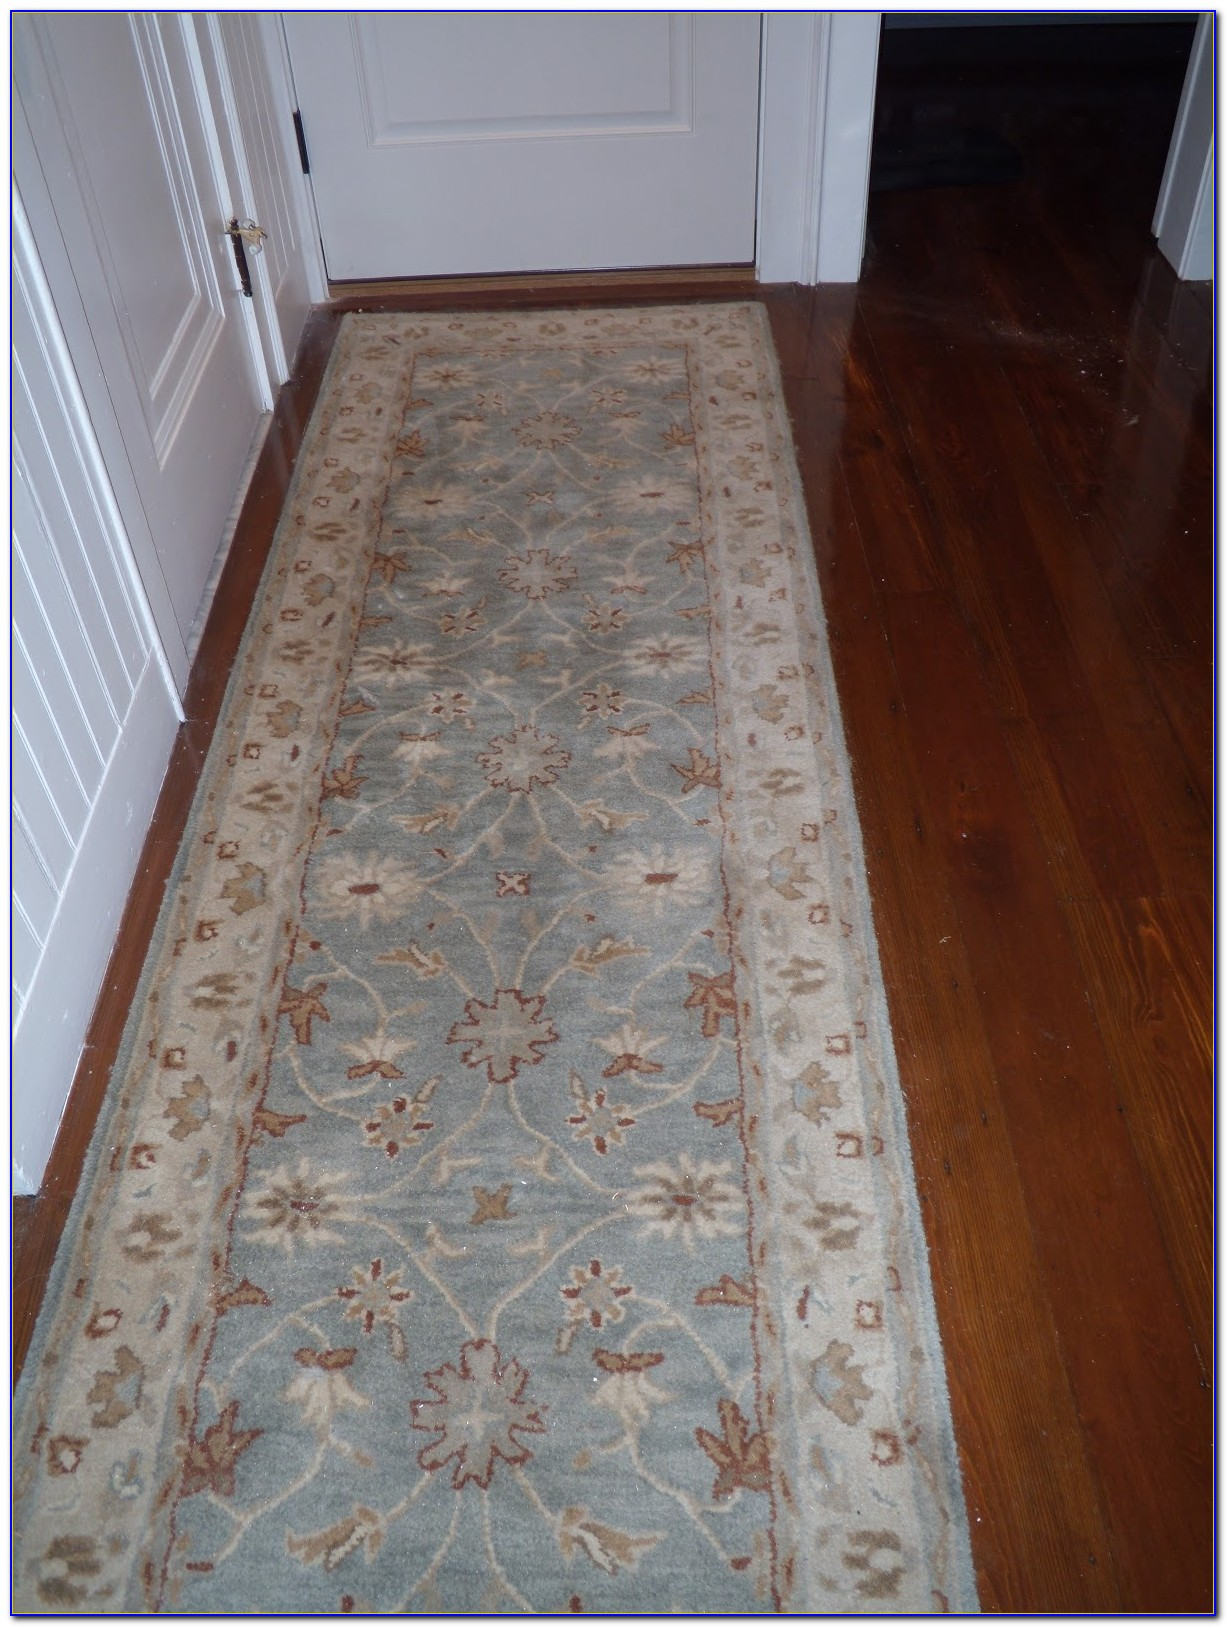 Ocean State Job Lot Indoor Outdoor Rugs